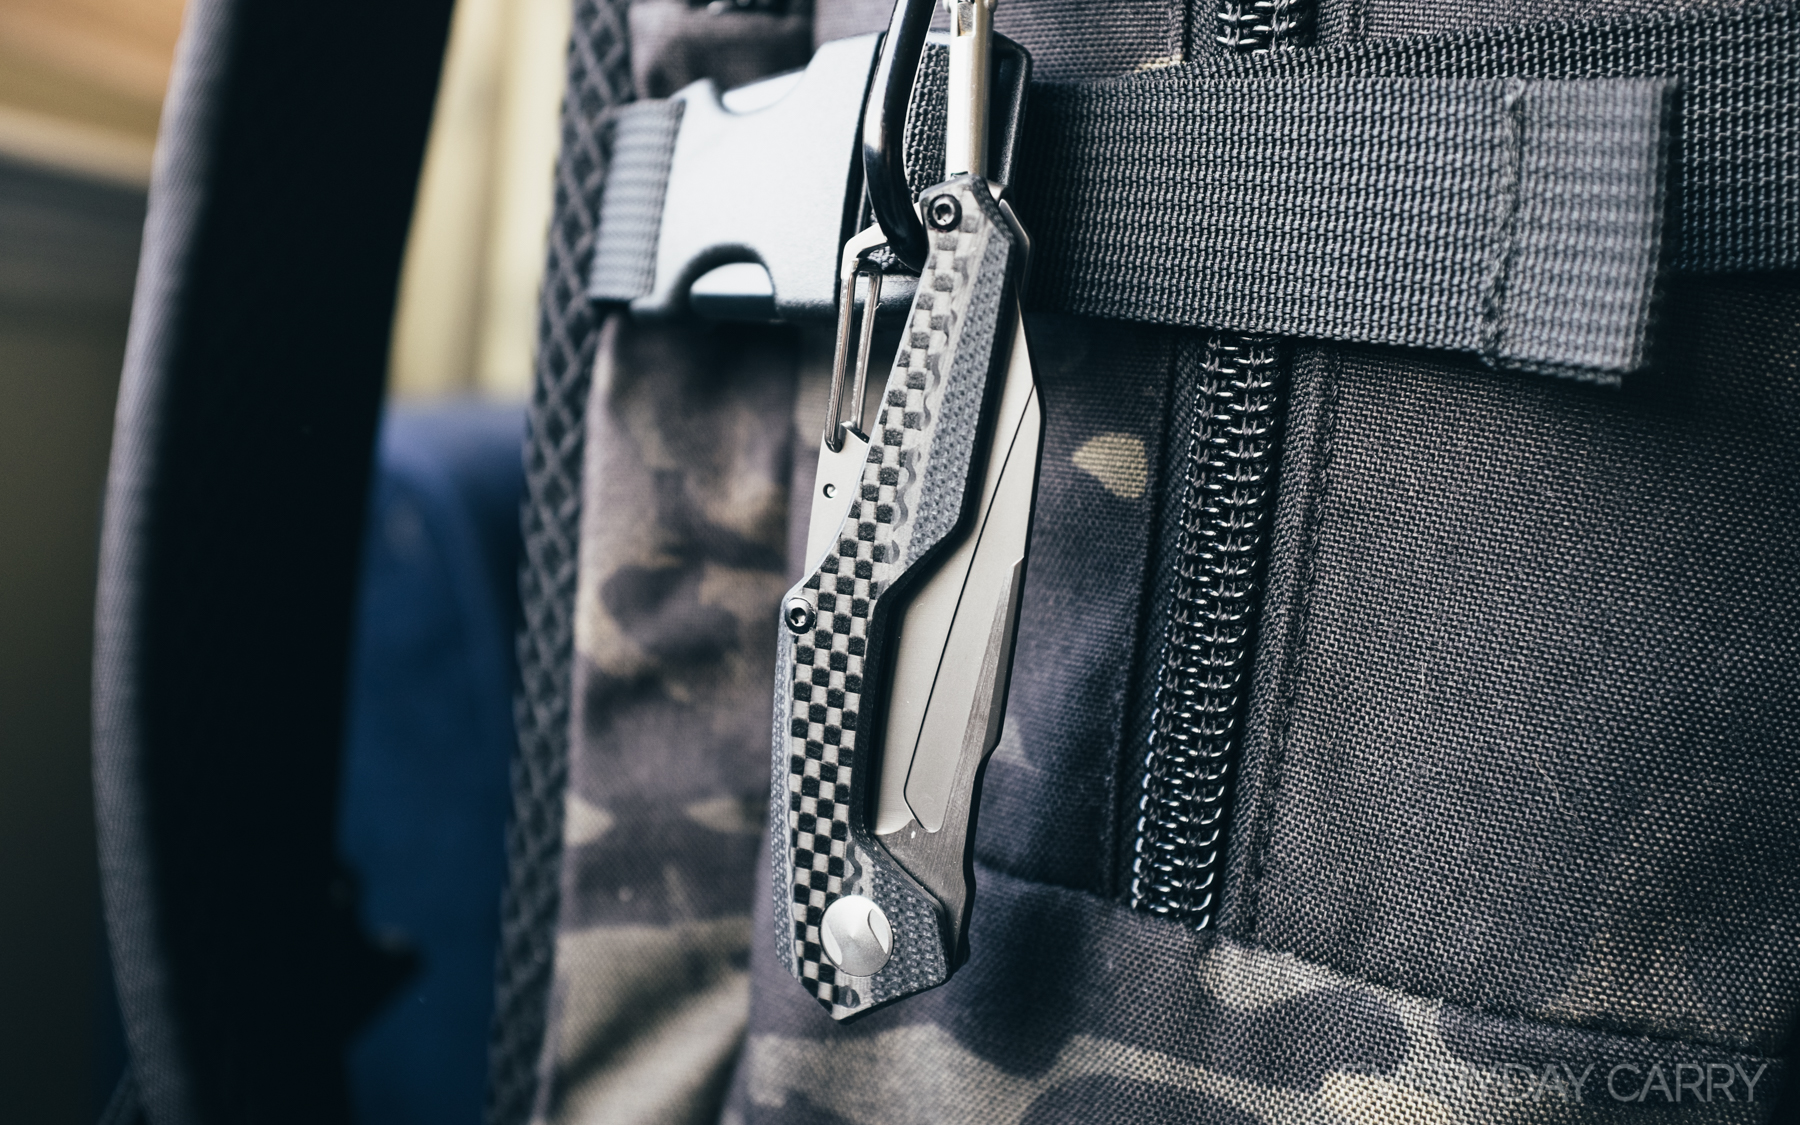 Best Ultralight Pocket Knives for EDC in 2020